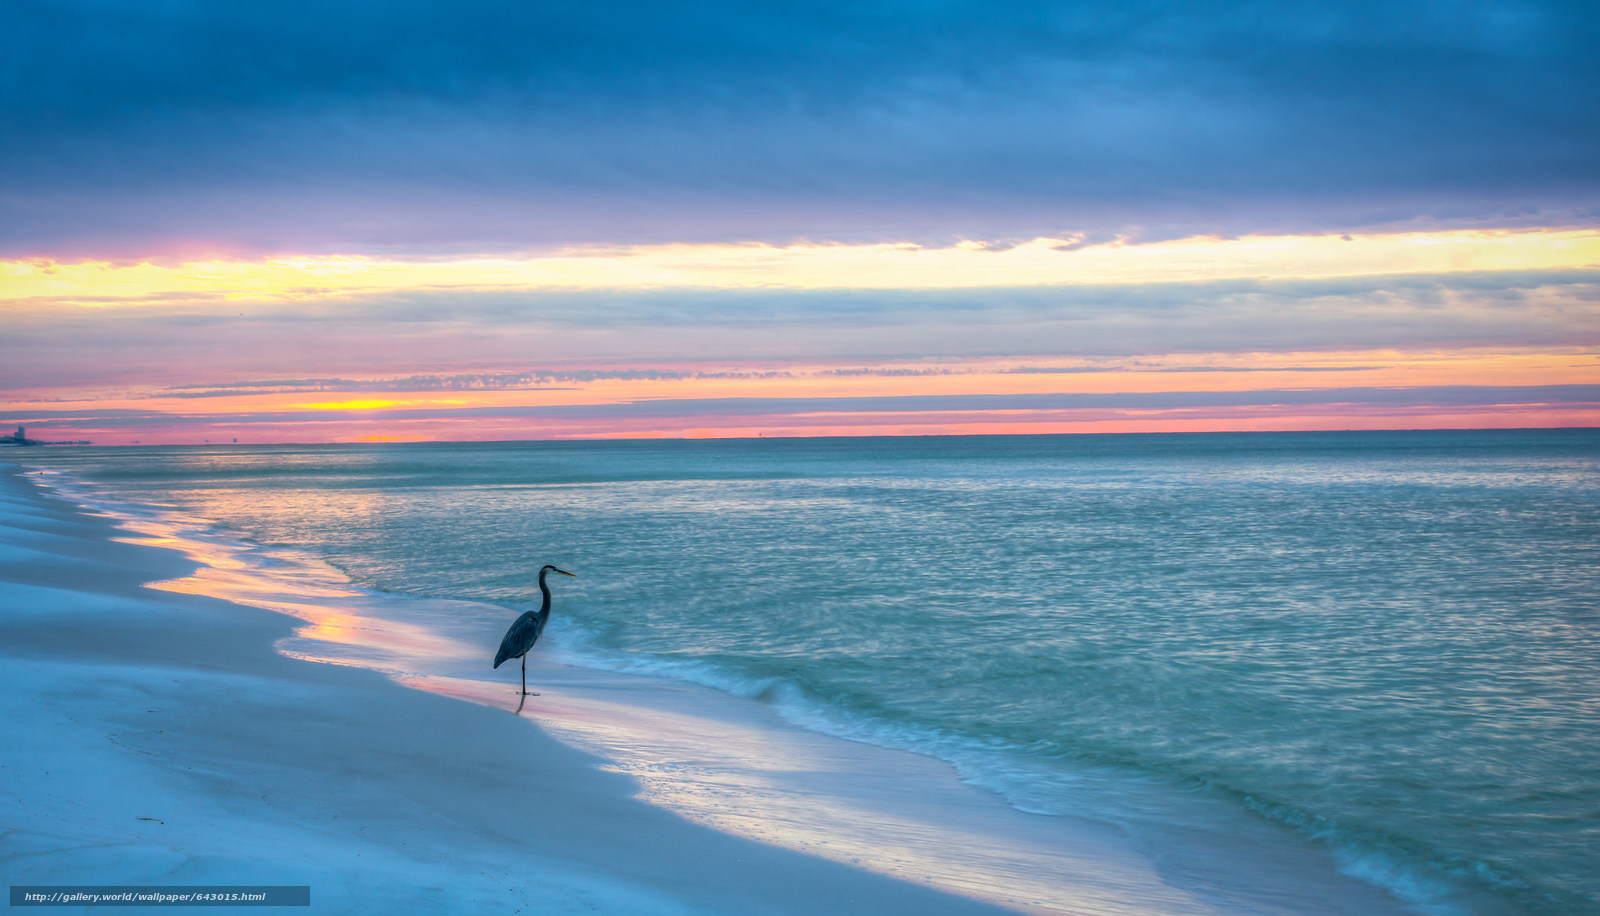 Download Wallpaper Gulf Of Mexico Blue Mountain Beach Florida Sunset Free Desktop In The Resolution 2048x1173 Picture No643015